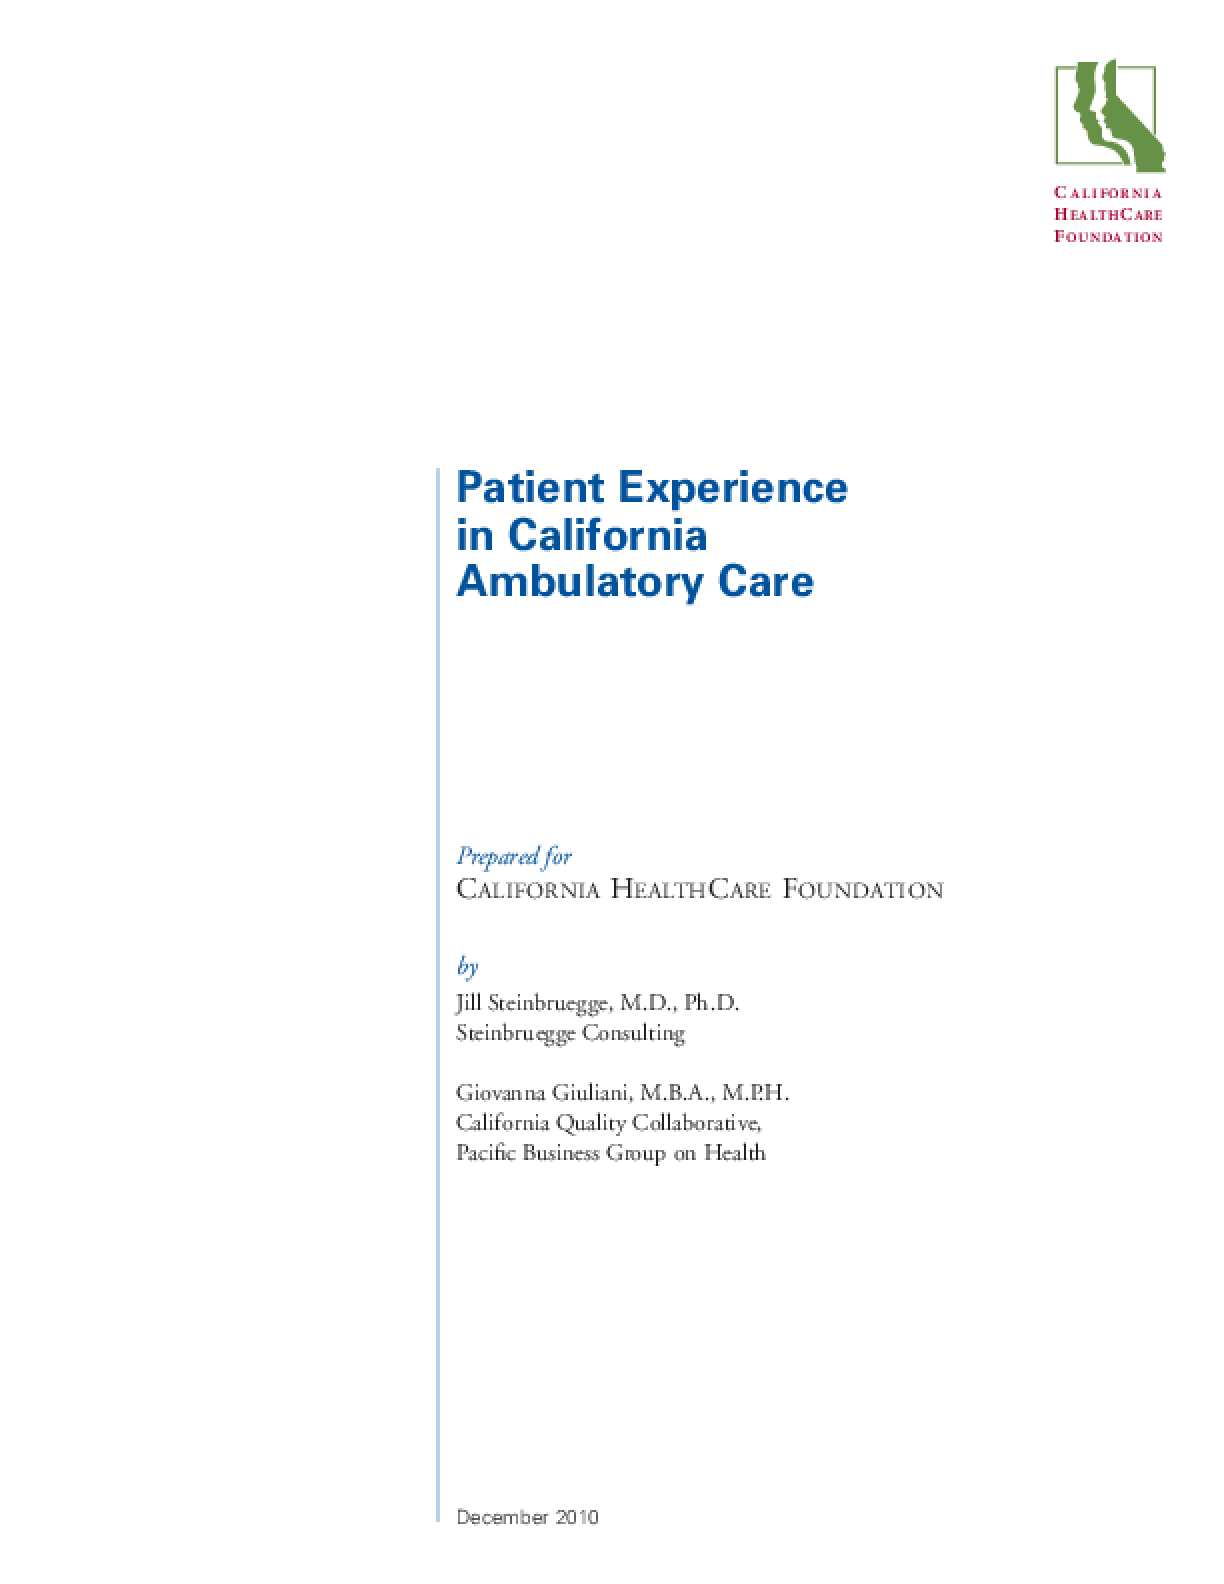 Patient Experience in California Ambulatory Care